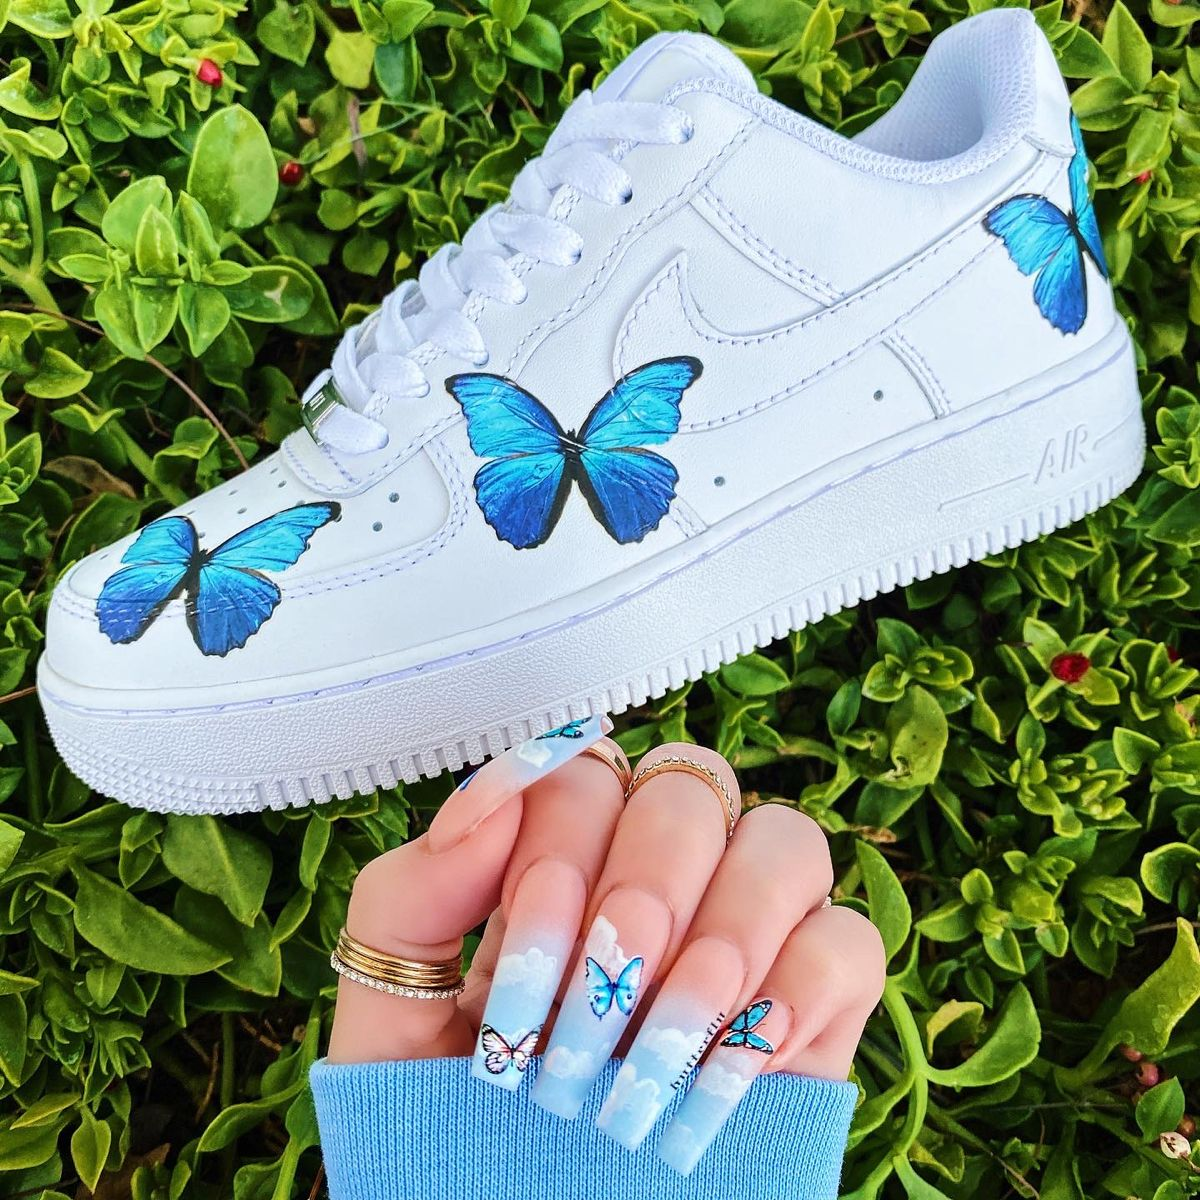 Butterfly Nails 🦋 in 2020 Diy clothes and shoes, Custom